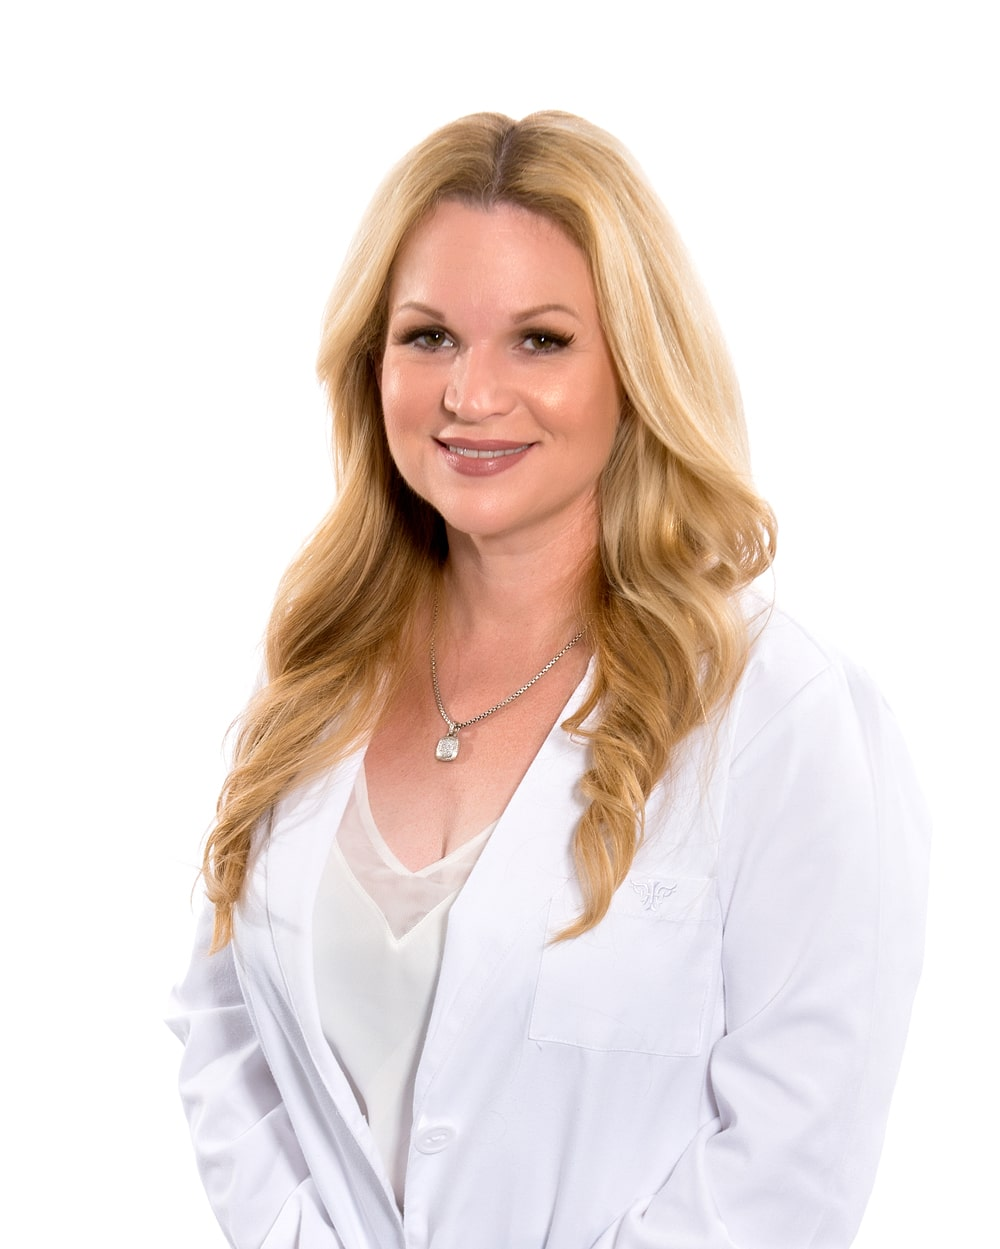 Charlotte Hodges, MD Dallas Plano